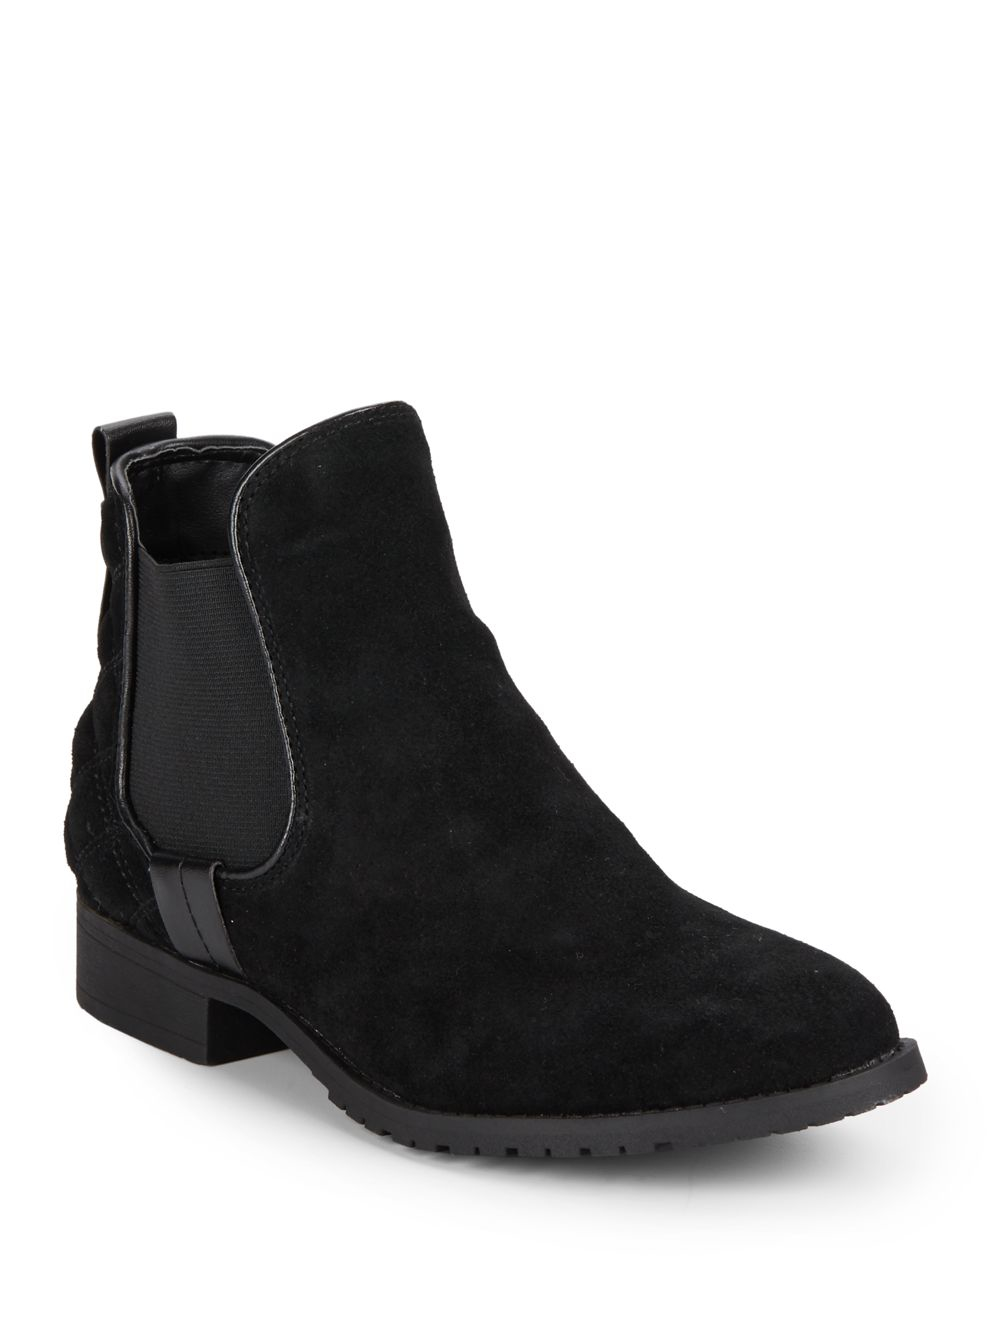 Steve Madden Peyton Quilted Suede Ankle